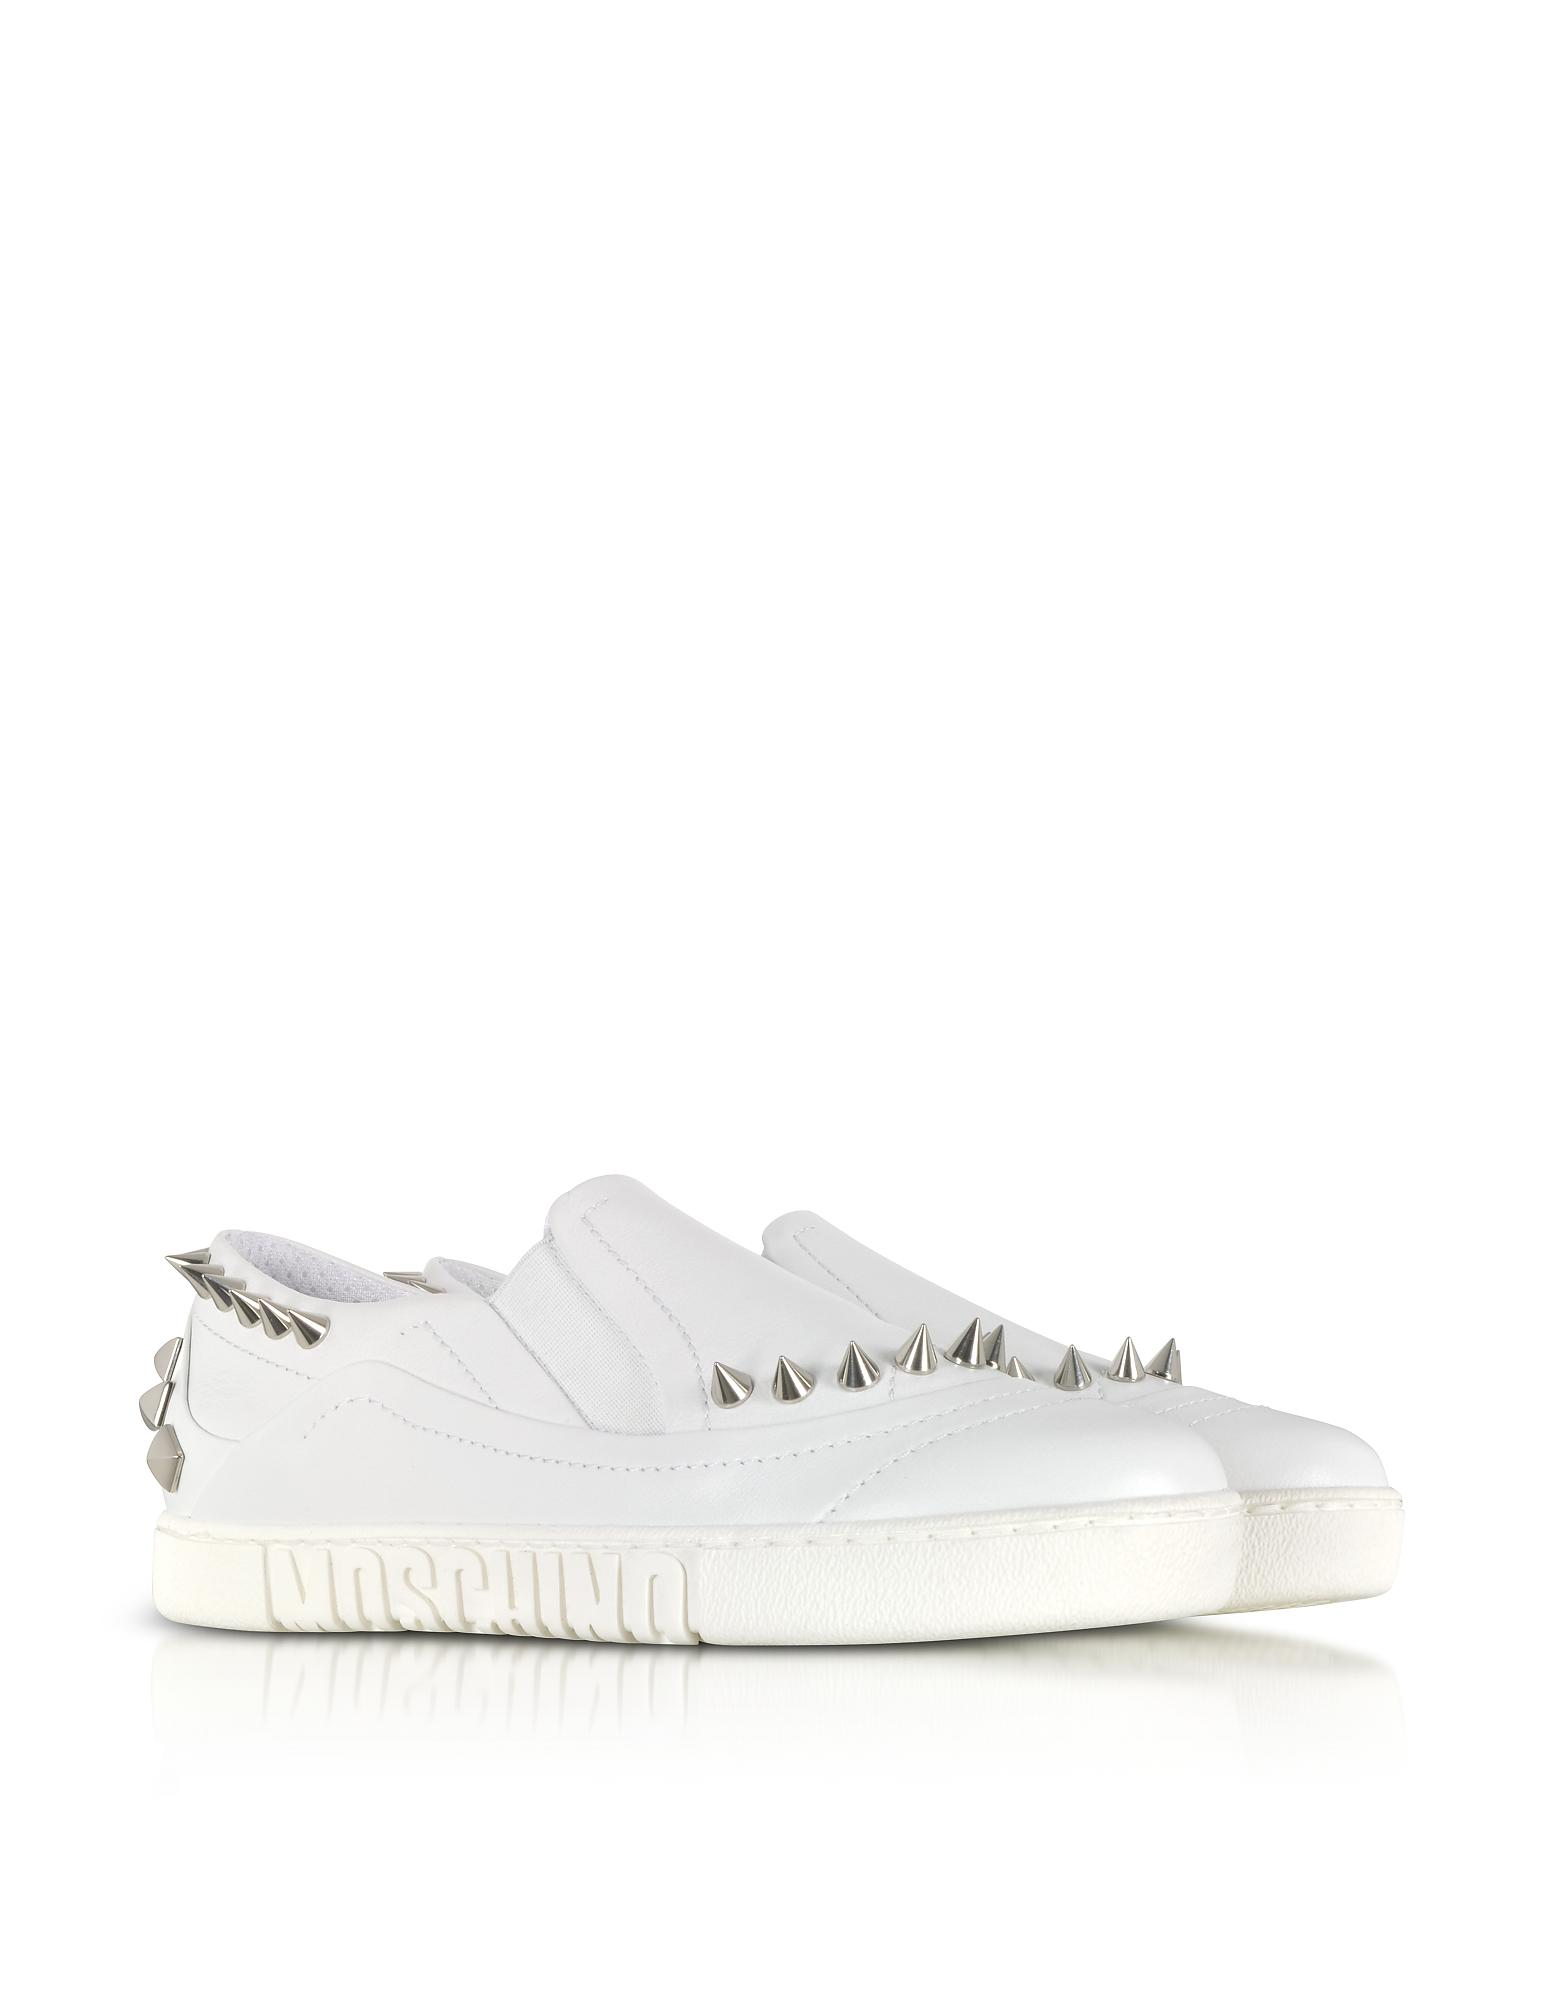 Moschino Shoes, Leather Slip On Sneakers w/Spikes